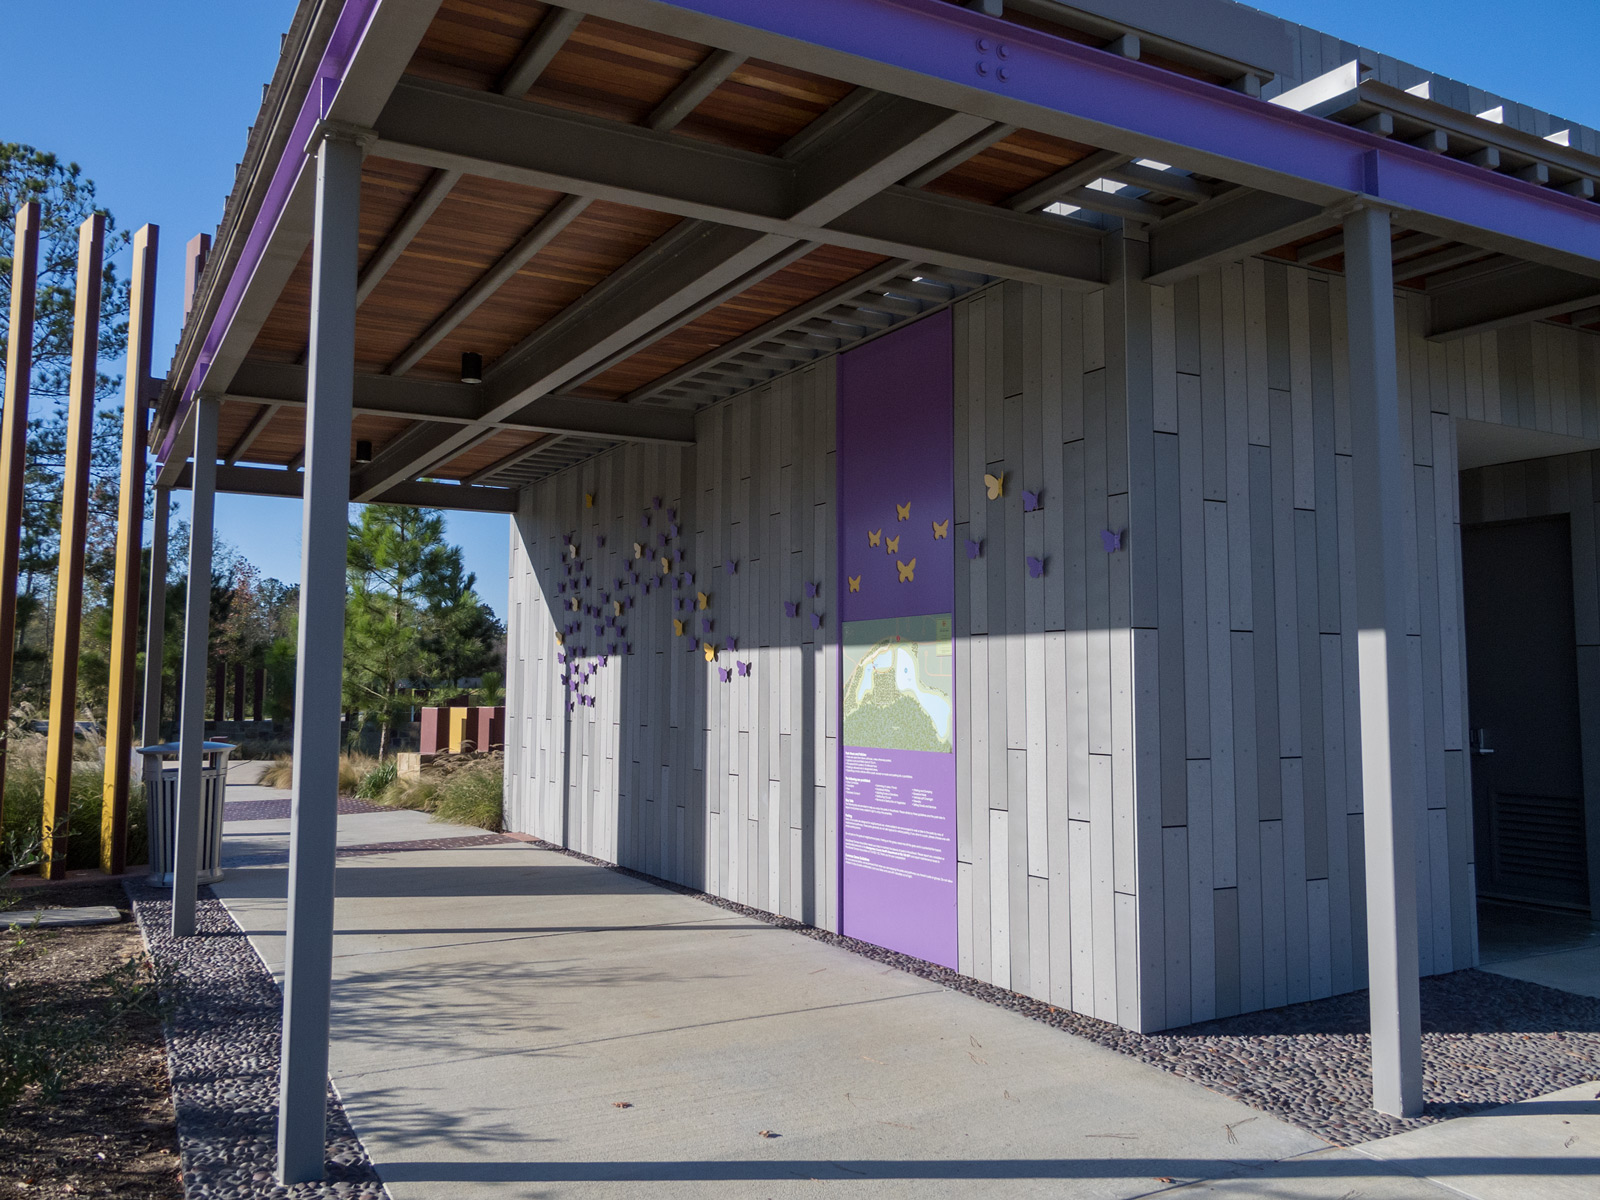 View from side of building with custom aluminum butterflies and park rules and map graphics panel.